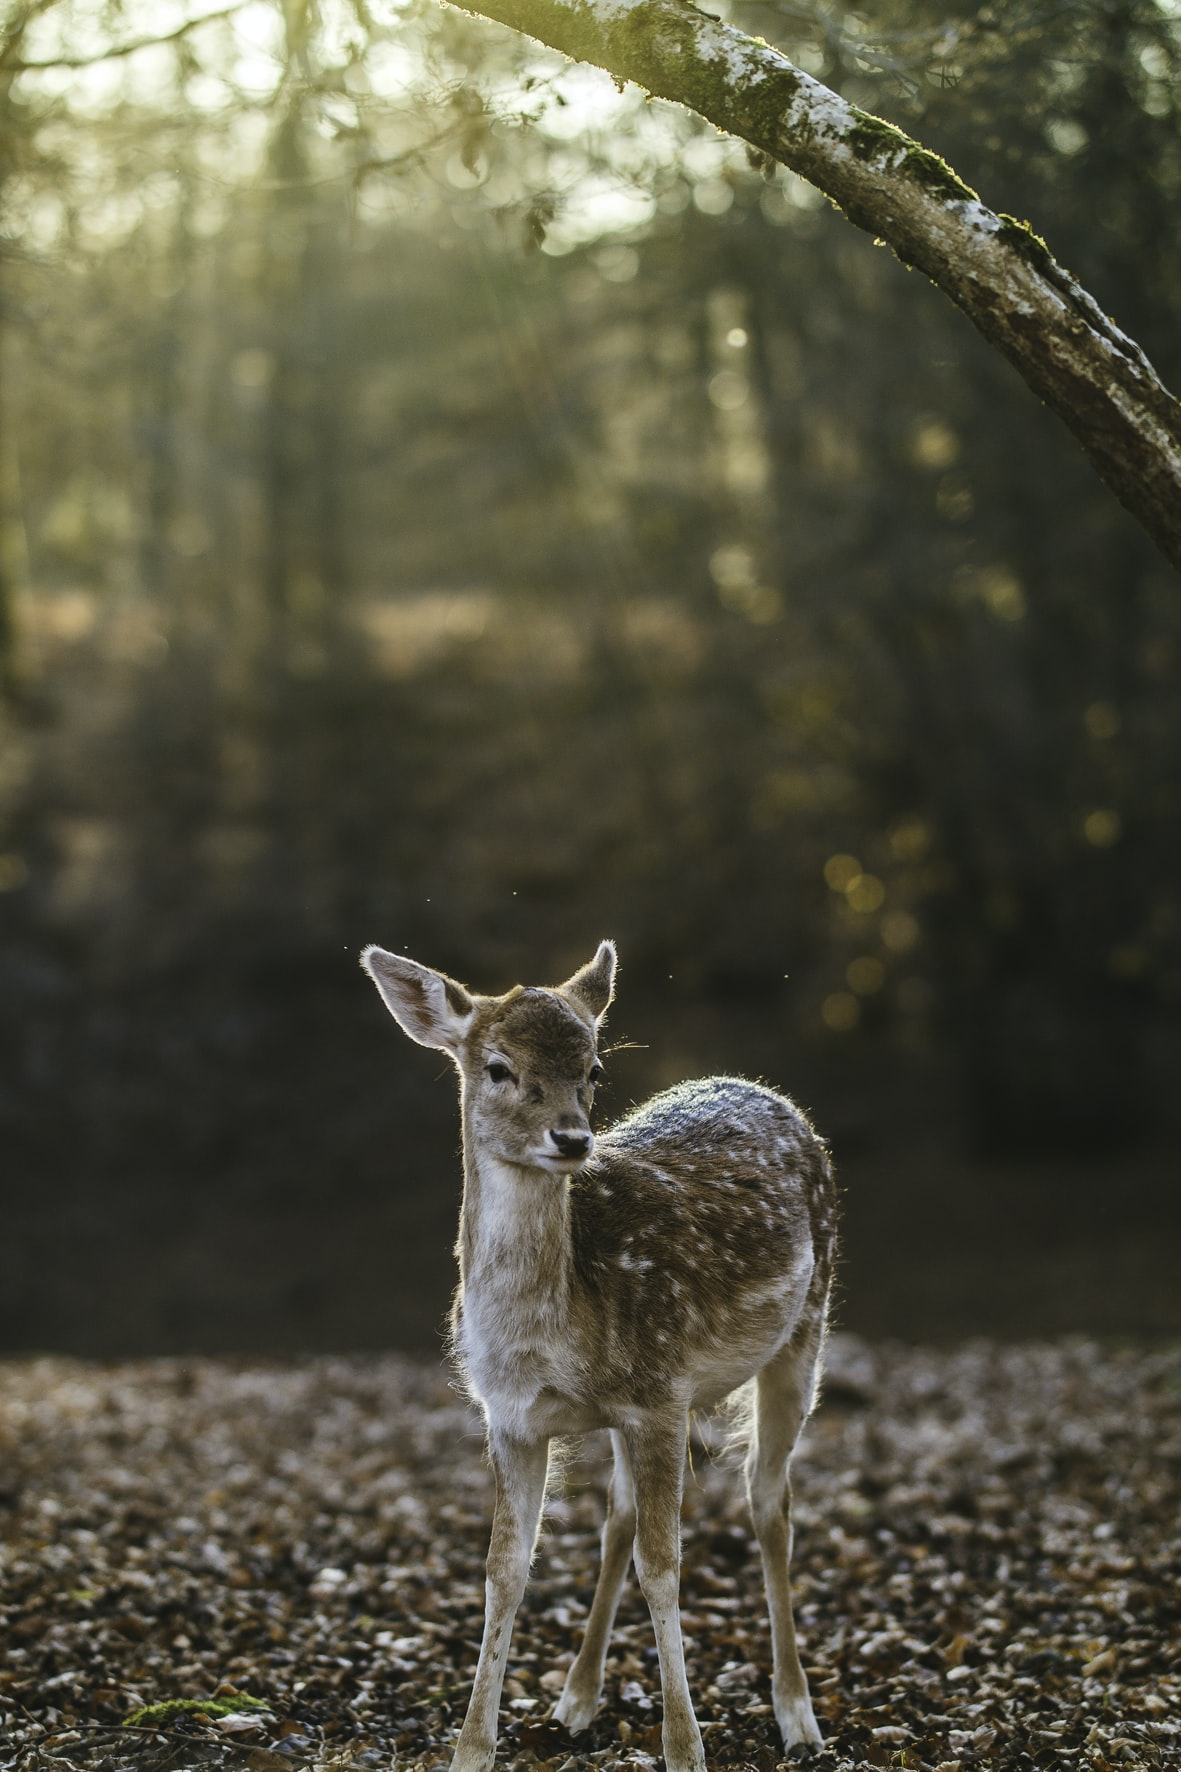 A calm fawn on the forest floor with sun breaking through the tree canopy in Besançon